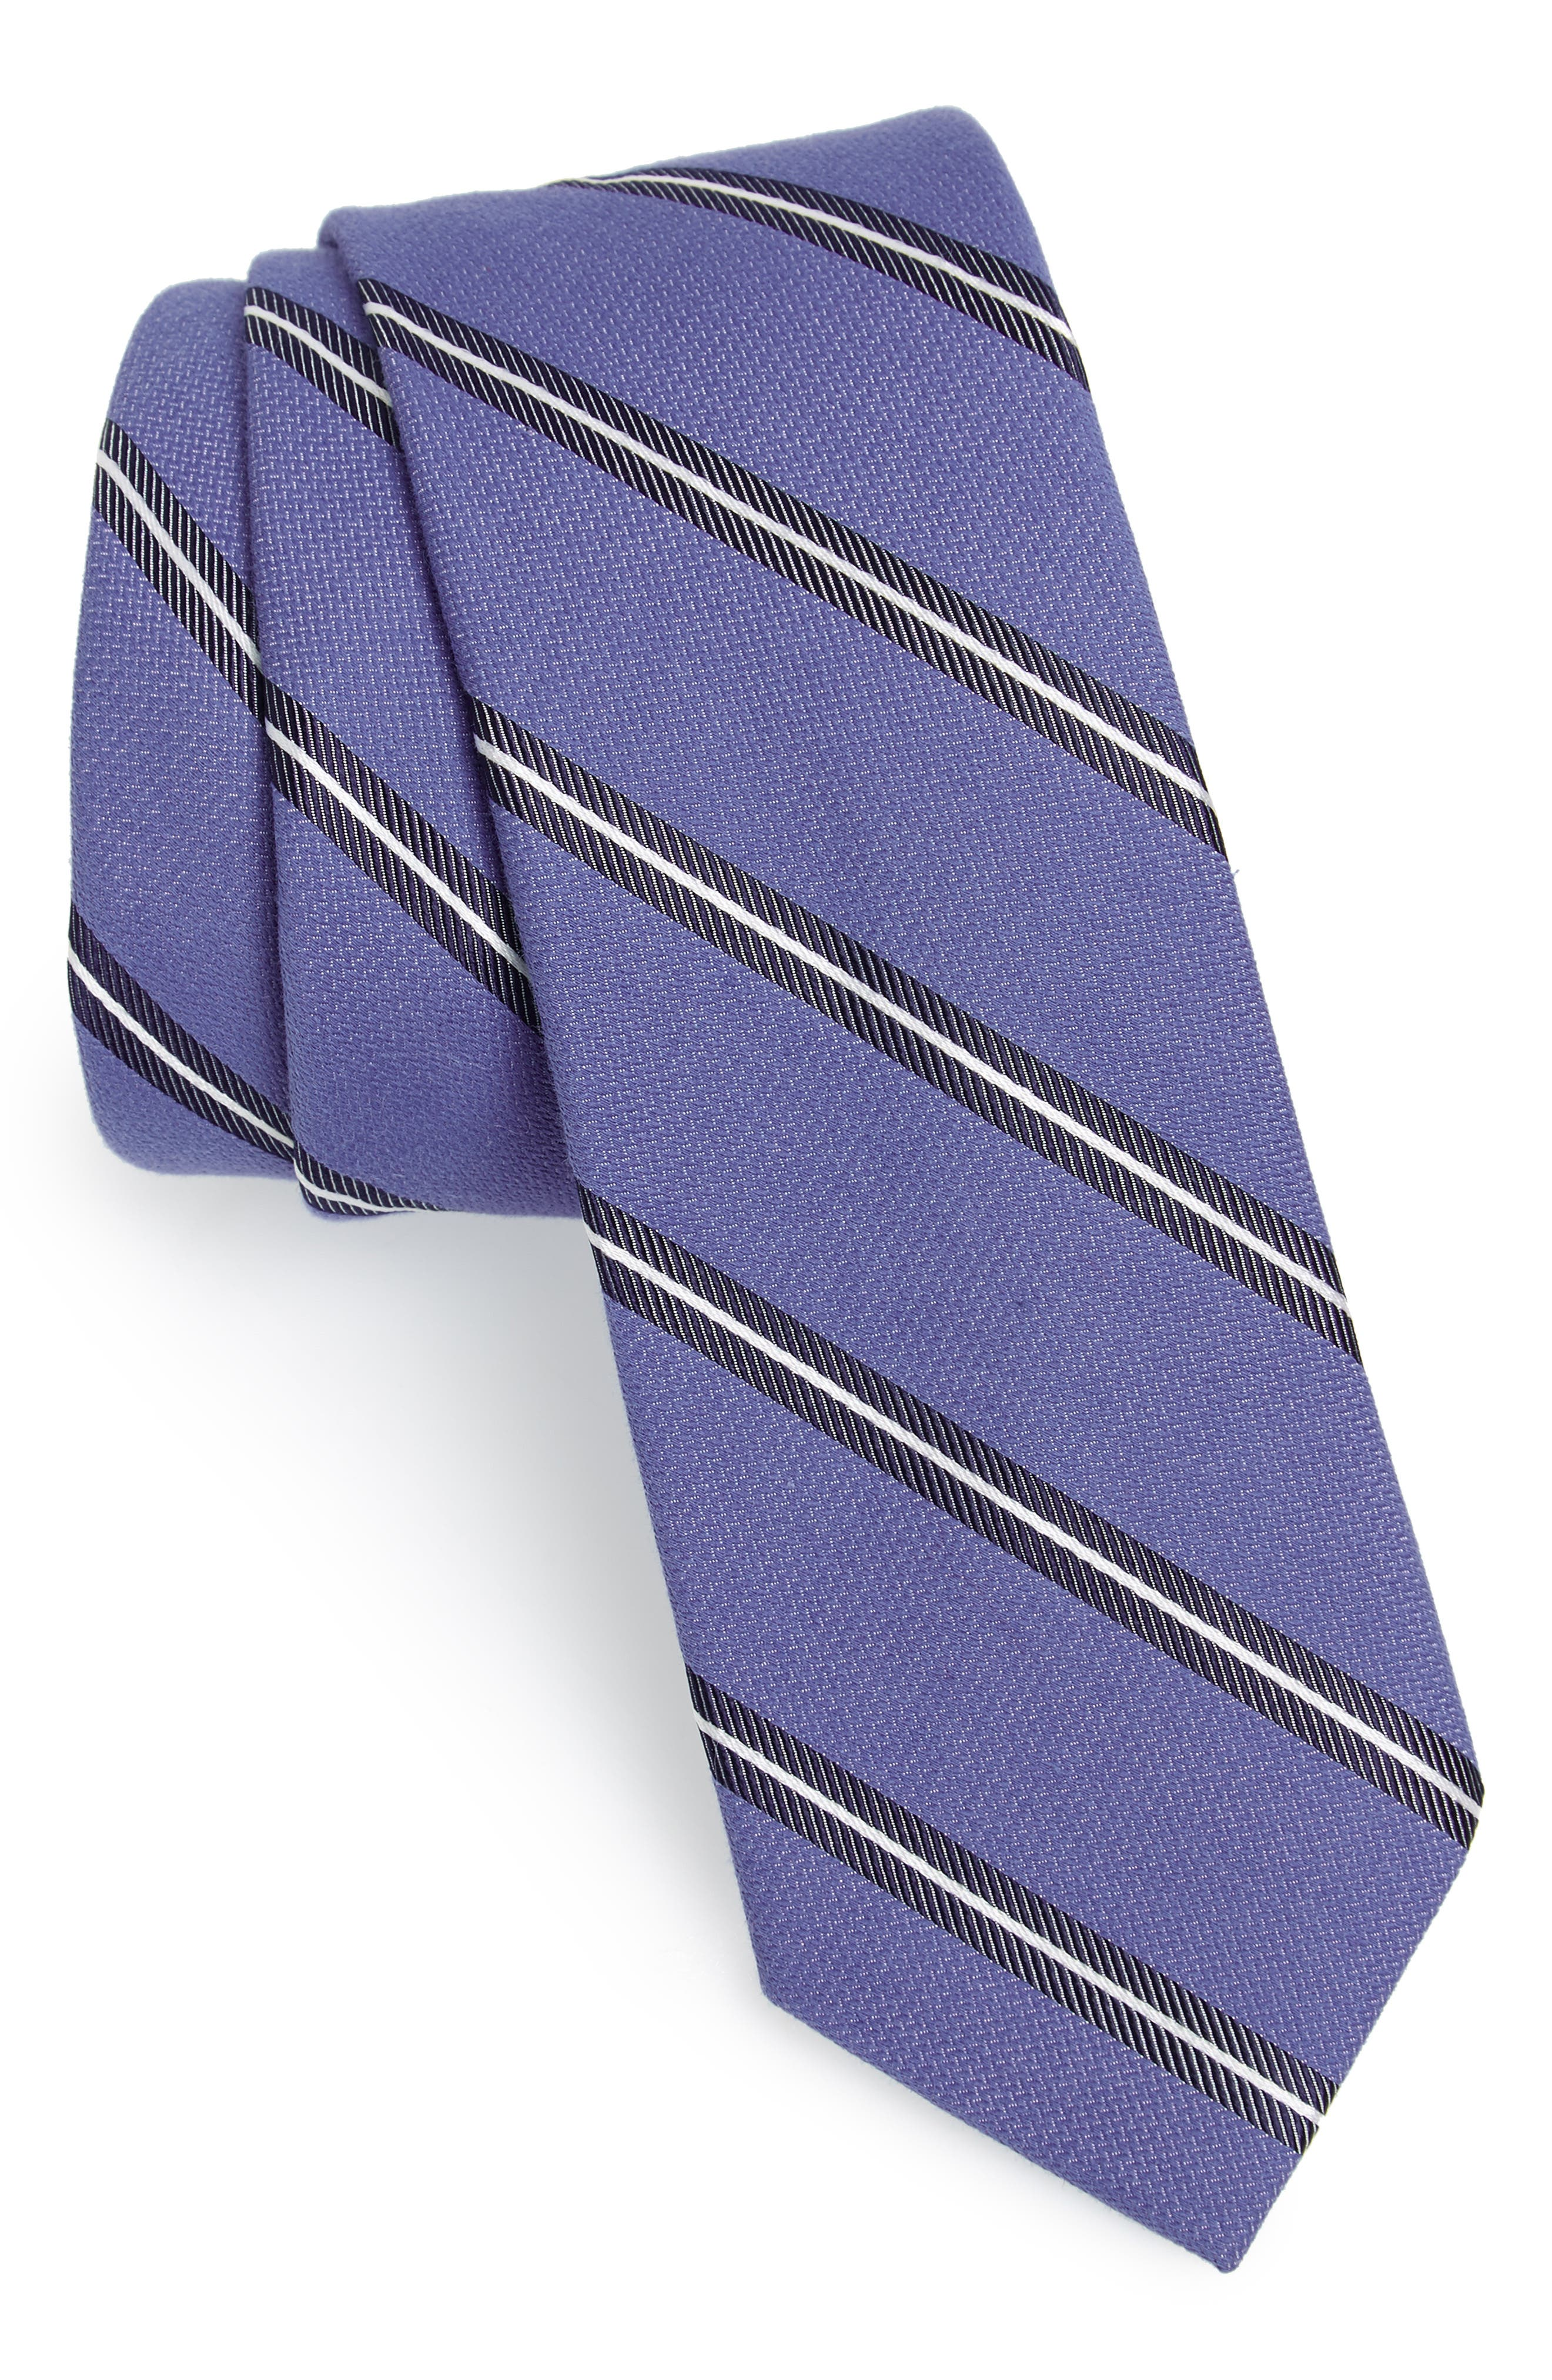 Edinger Stripe Silk & Cotton Tie,                             Main thumbnail 1, color,                             Blue